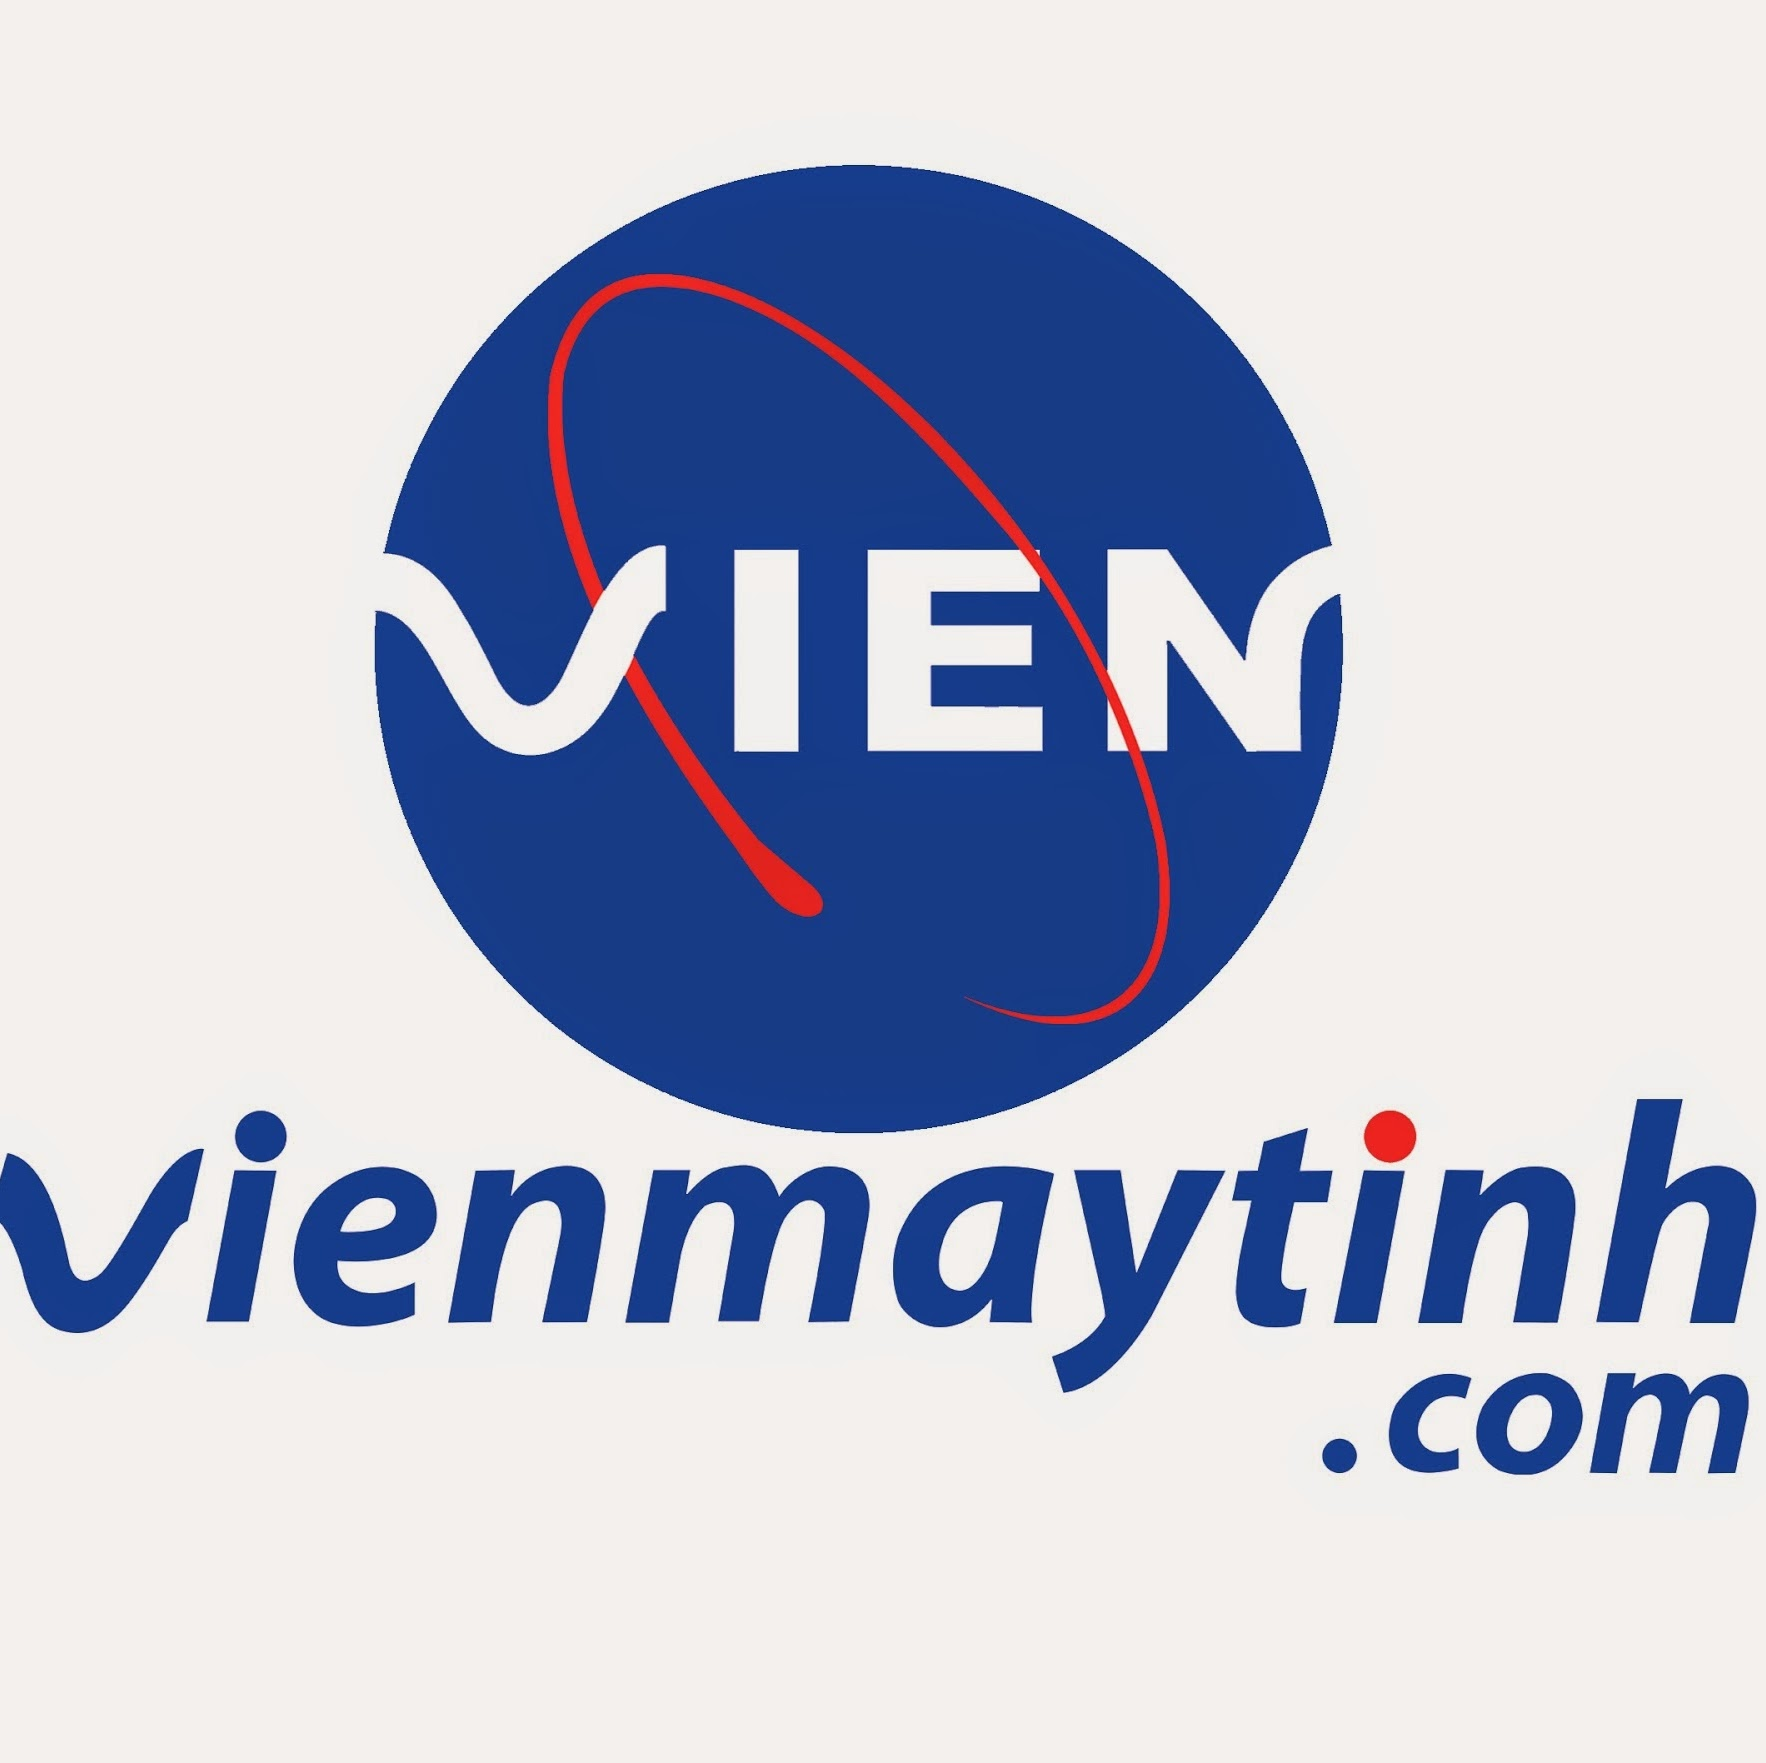 Description: http://vienmaytinh.com